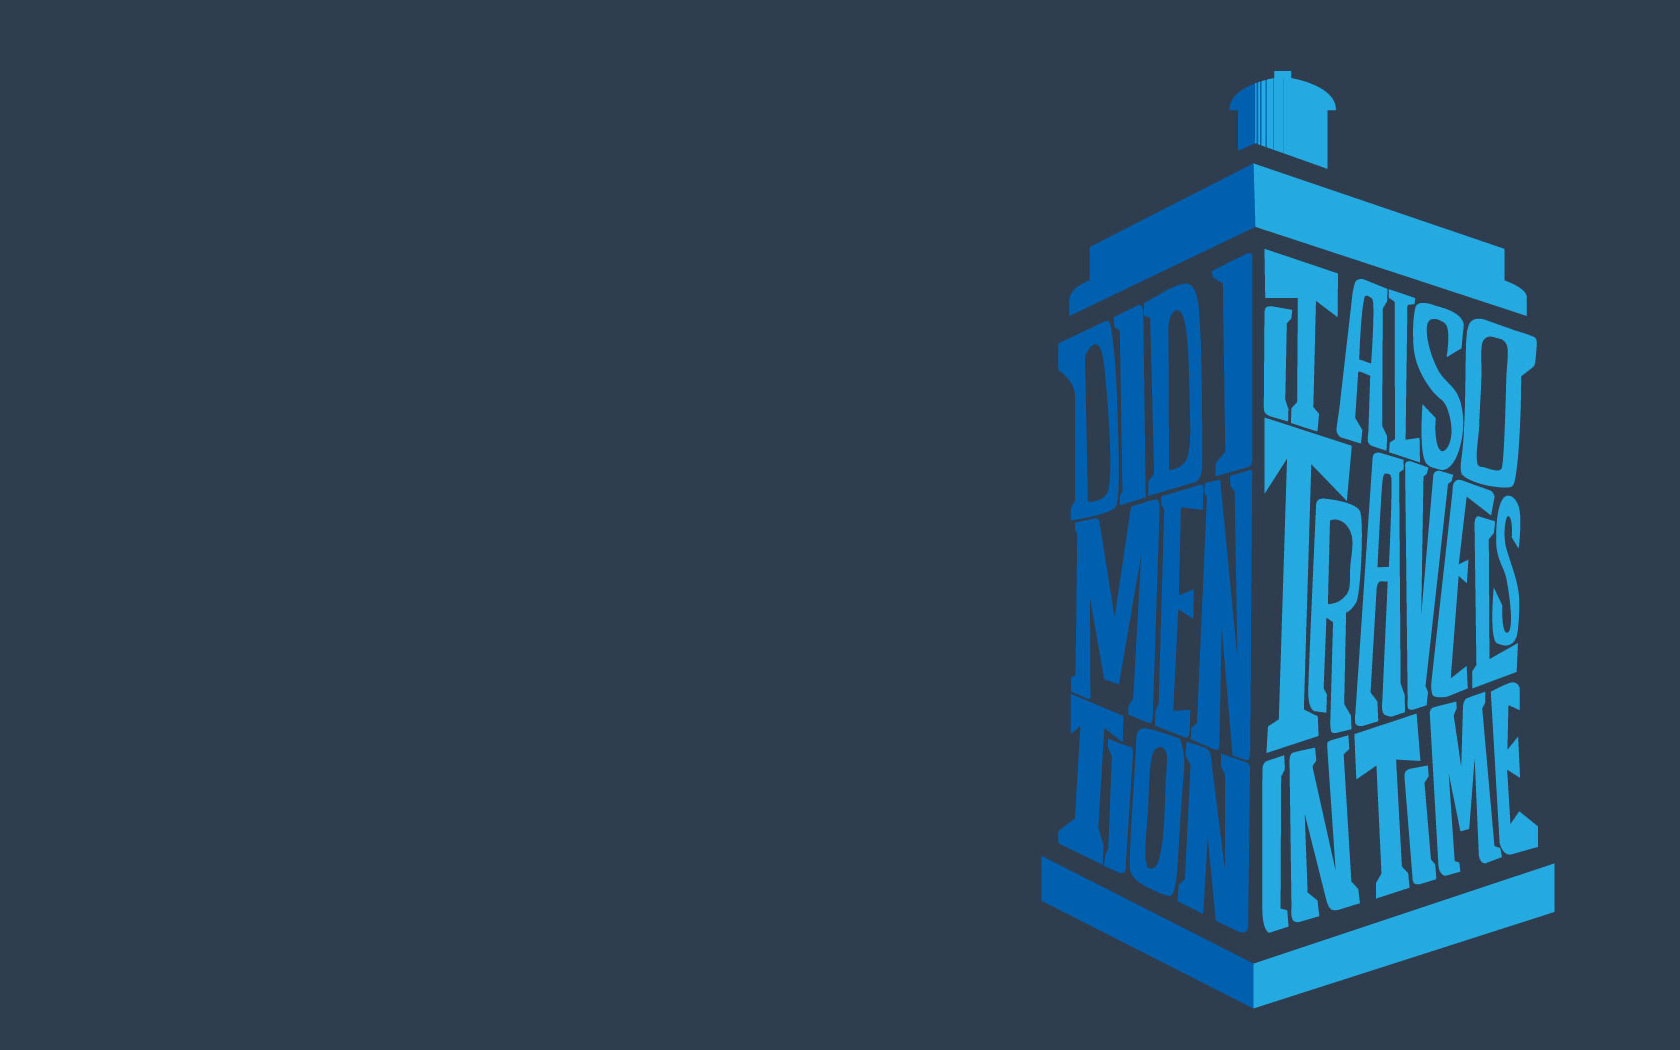 tardis images hd wallpaper - photo #4